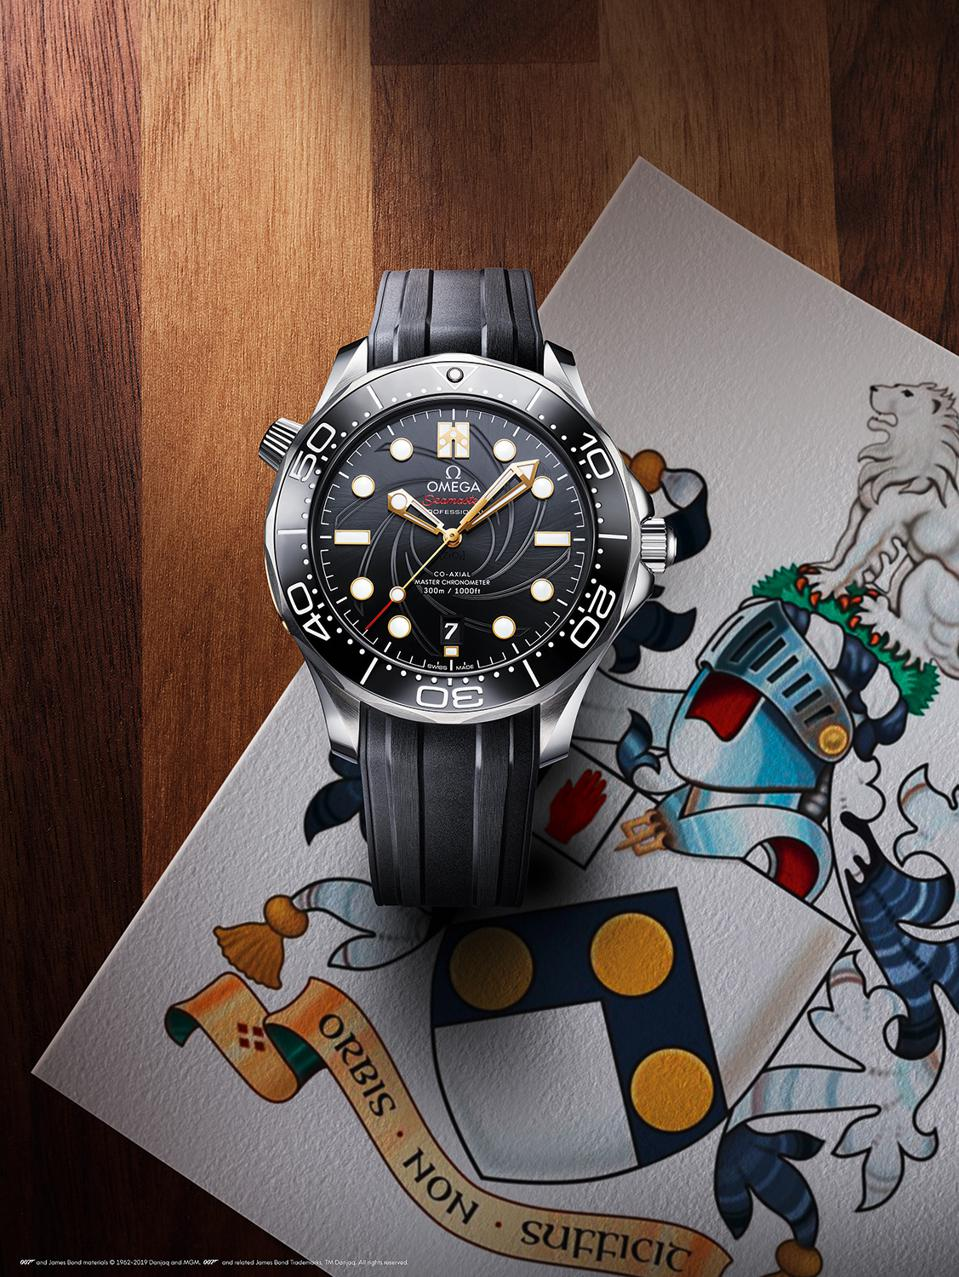 Omega Releases Limited New Seamaster Diver 300M In Celebration Of 50 Years Of James Bond's 'On Her Majesty's Secret Service'